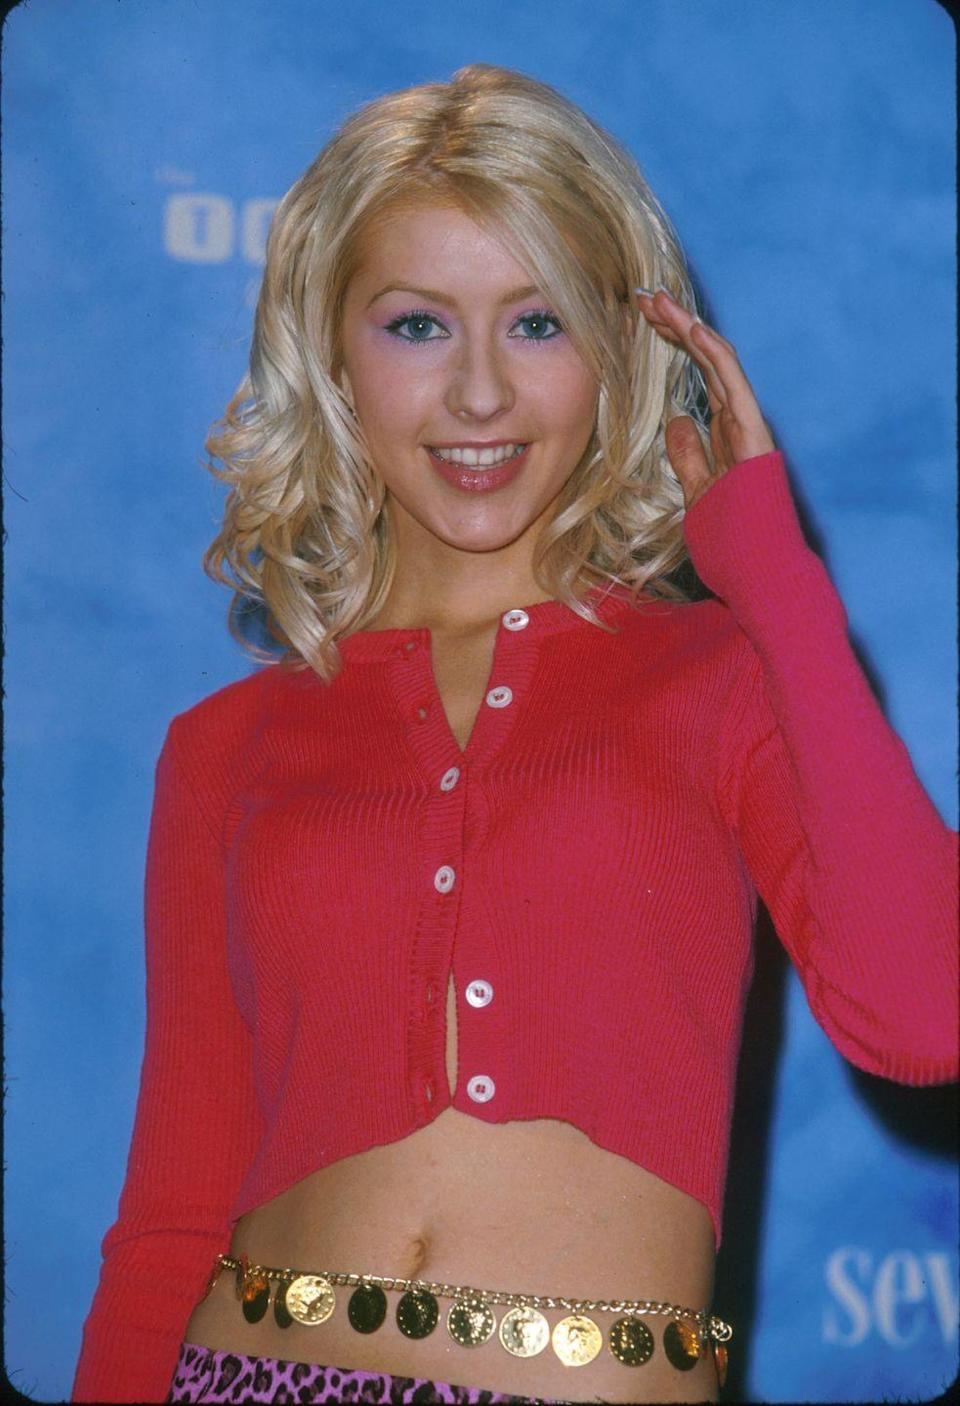 <p>Christina Aguilera was queen of the belly chains back in the '90s. Today, we're not afraid to show off our abs, but belly chains are a different story. These flashy pieces of jewelry aren't going to making any trend lists anytime soon.</p>